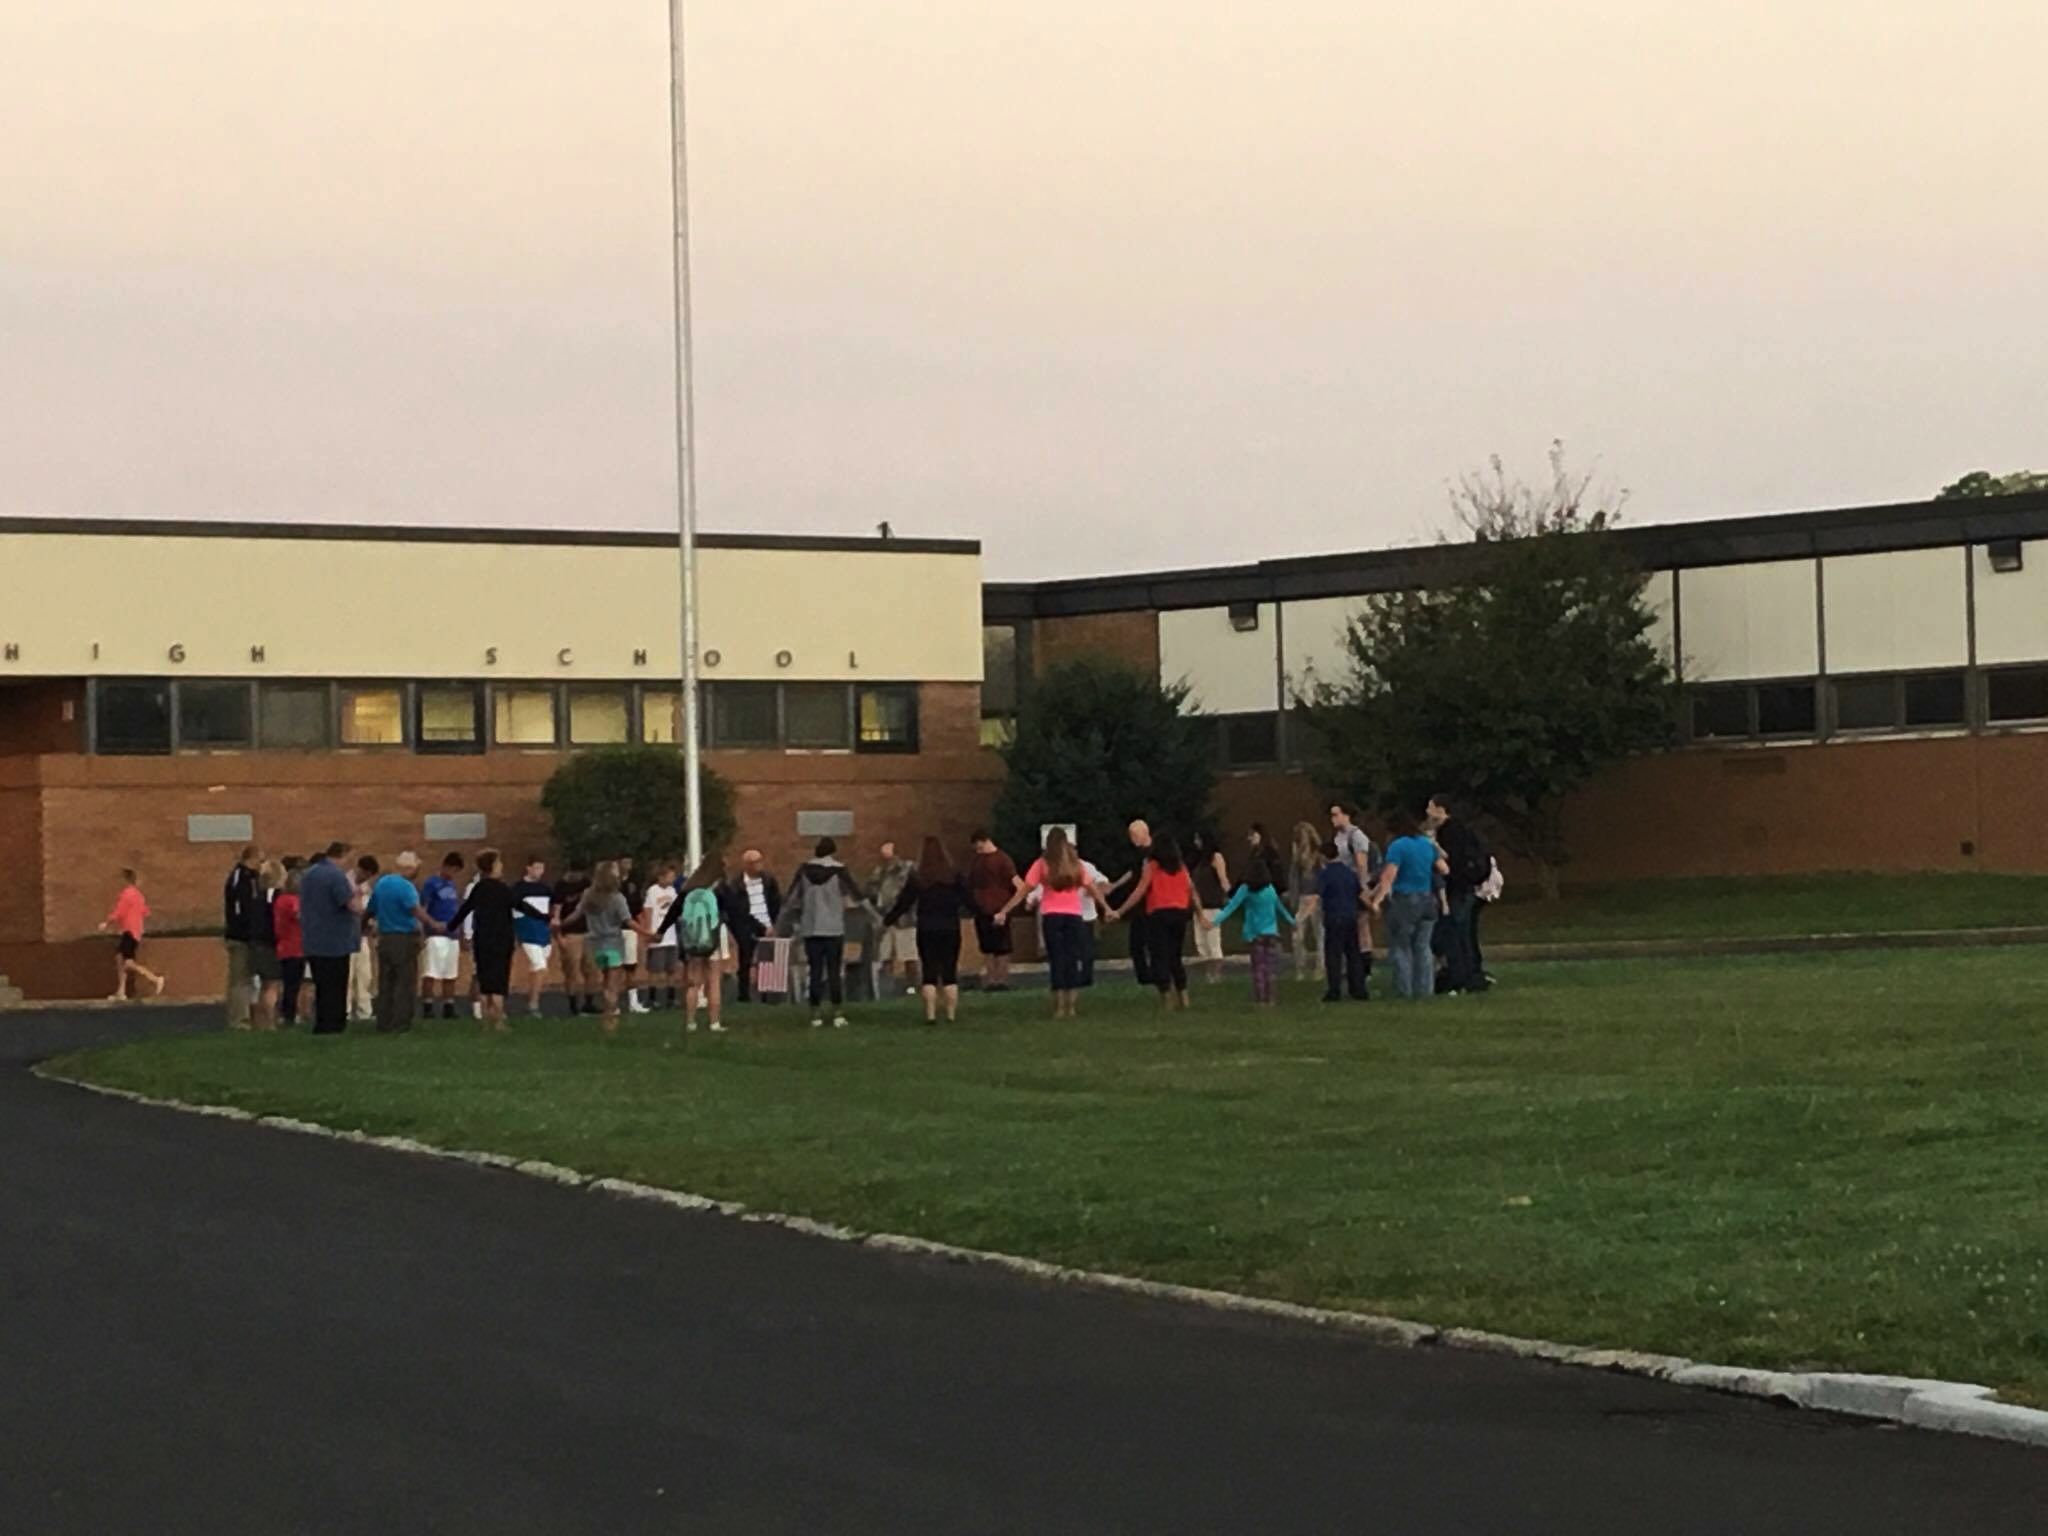 National 'See You at the Pole' Day at Keystone High School on September 28. 44 students and adults took part in it. Photo submitted by Shane Tharan.